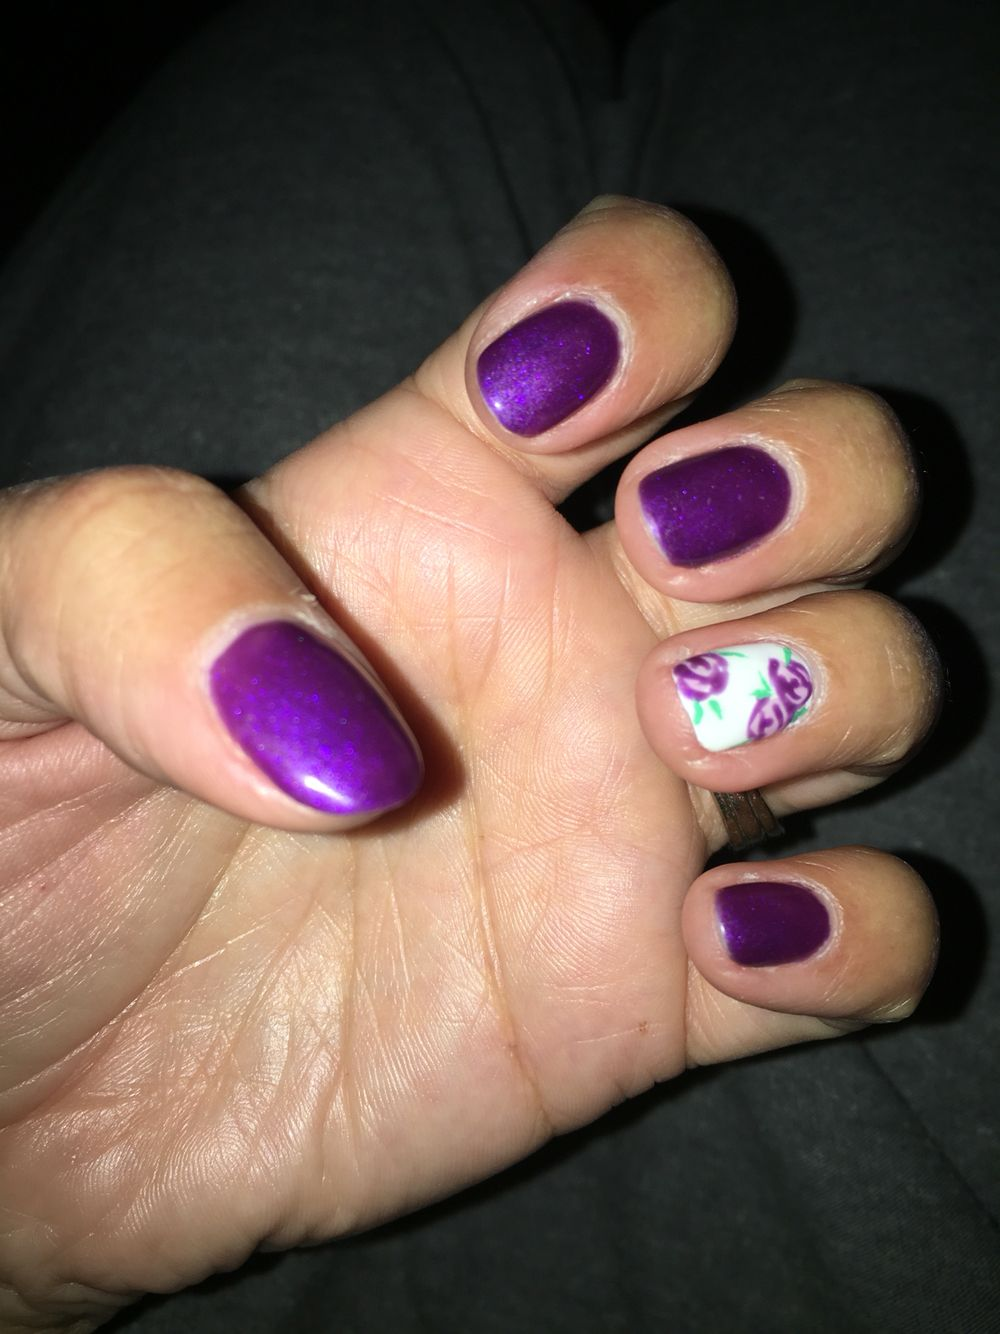 Cystic Fibrosis nails. Pretty purple with simple rose design ...